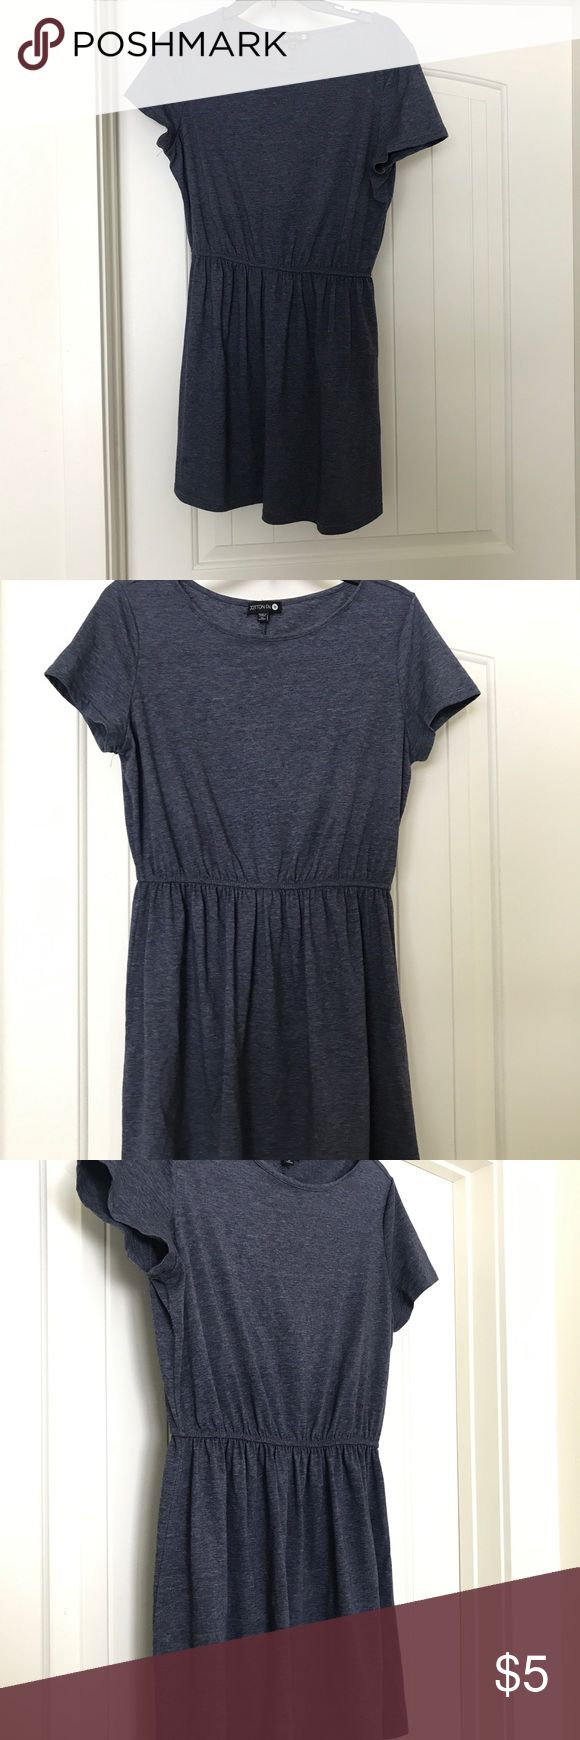 Bluish Grey Summer dress This is a GO TO for summer time. Feels like sweatpants. Has an elastic band around the waist that gives it a bit of style and fits above the knee. Add some jewelry and cute sandals and your set! Cotton On Dresses Mini